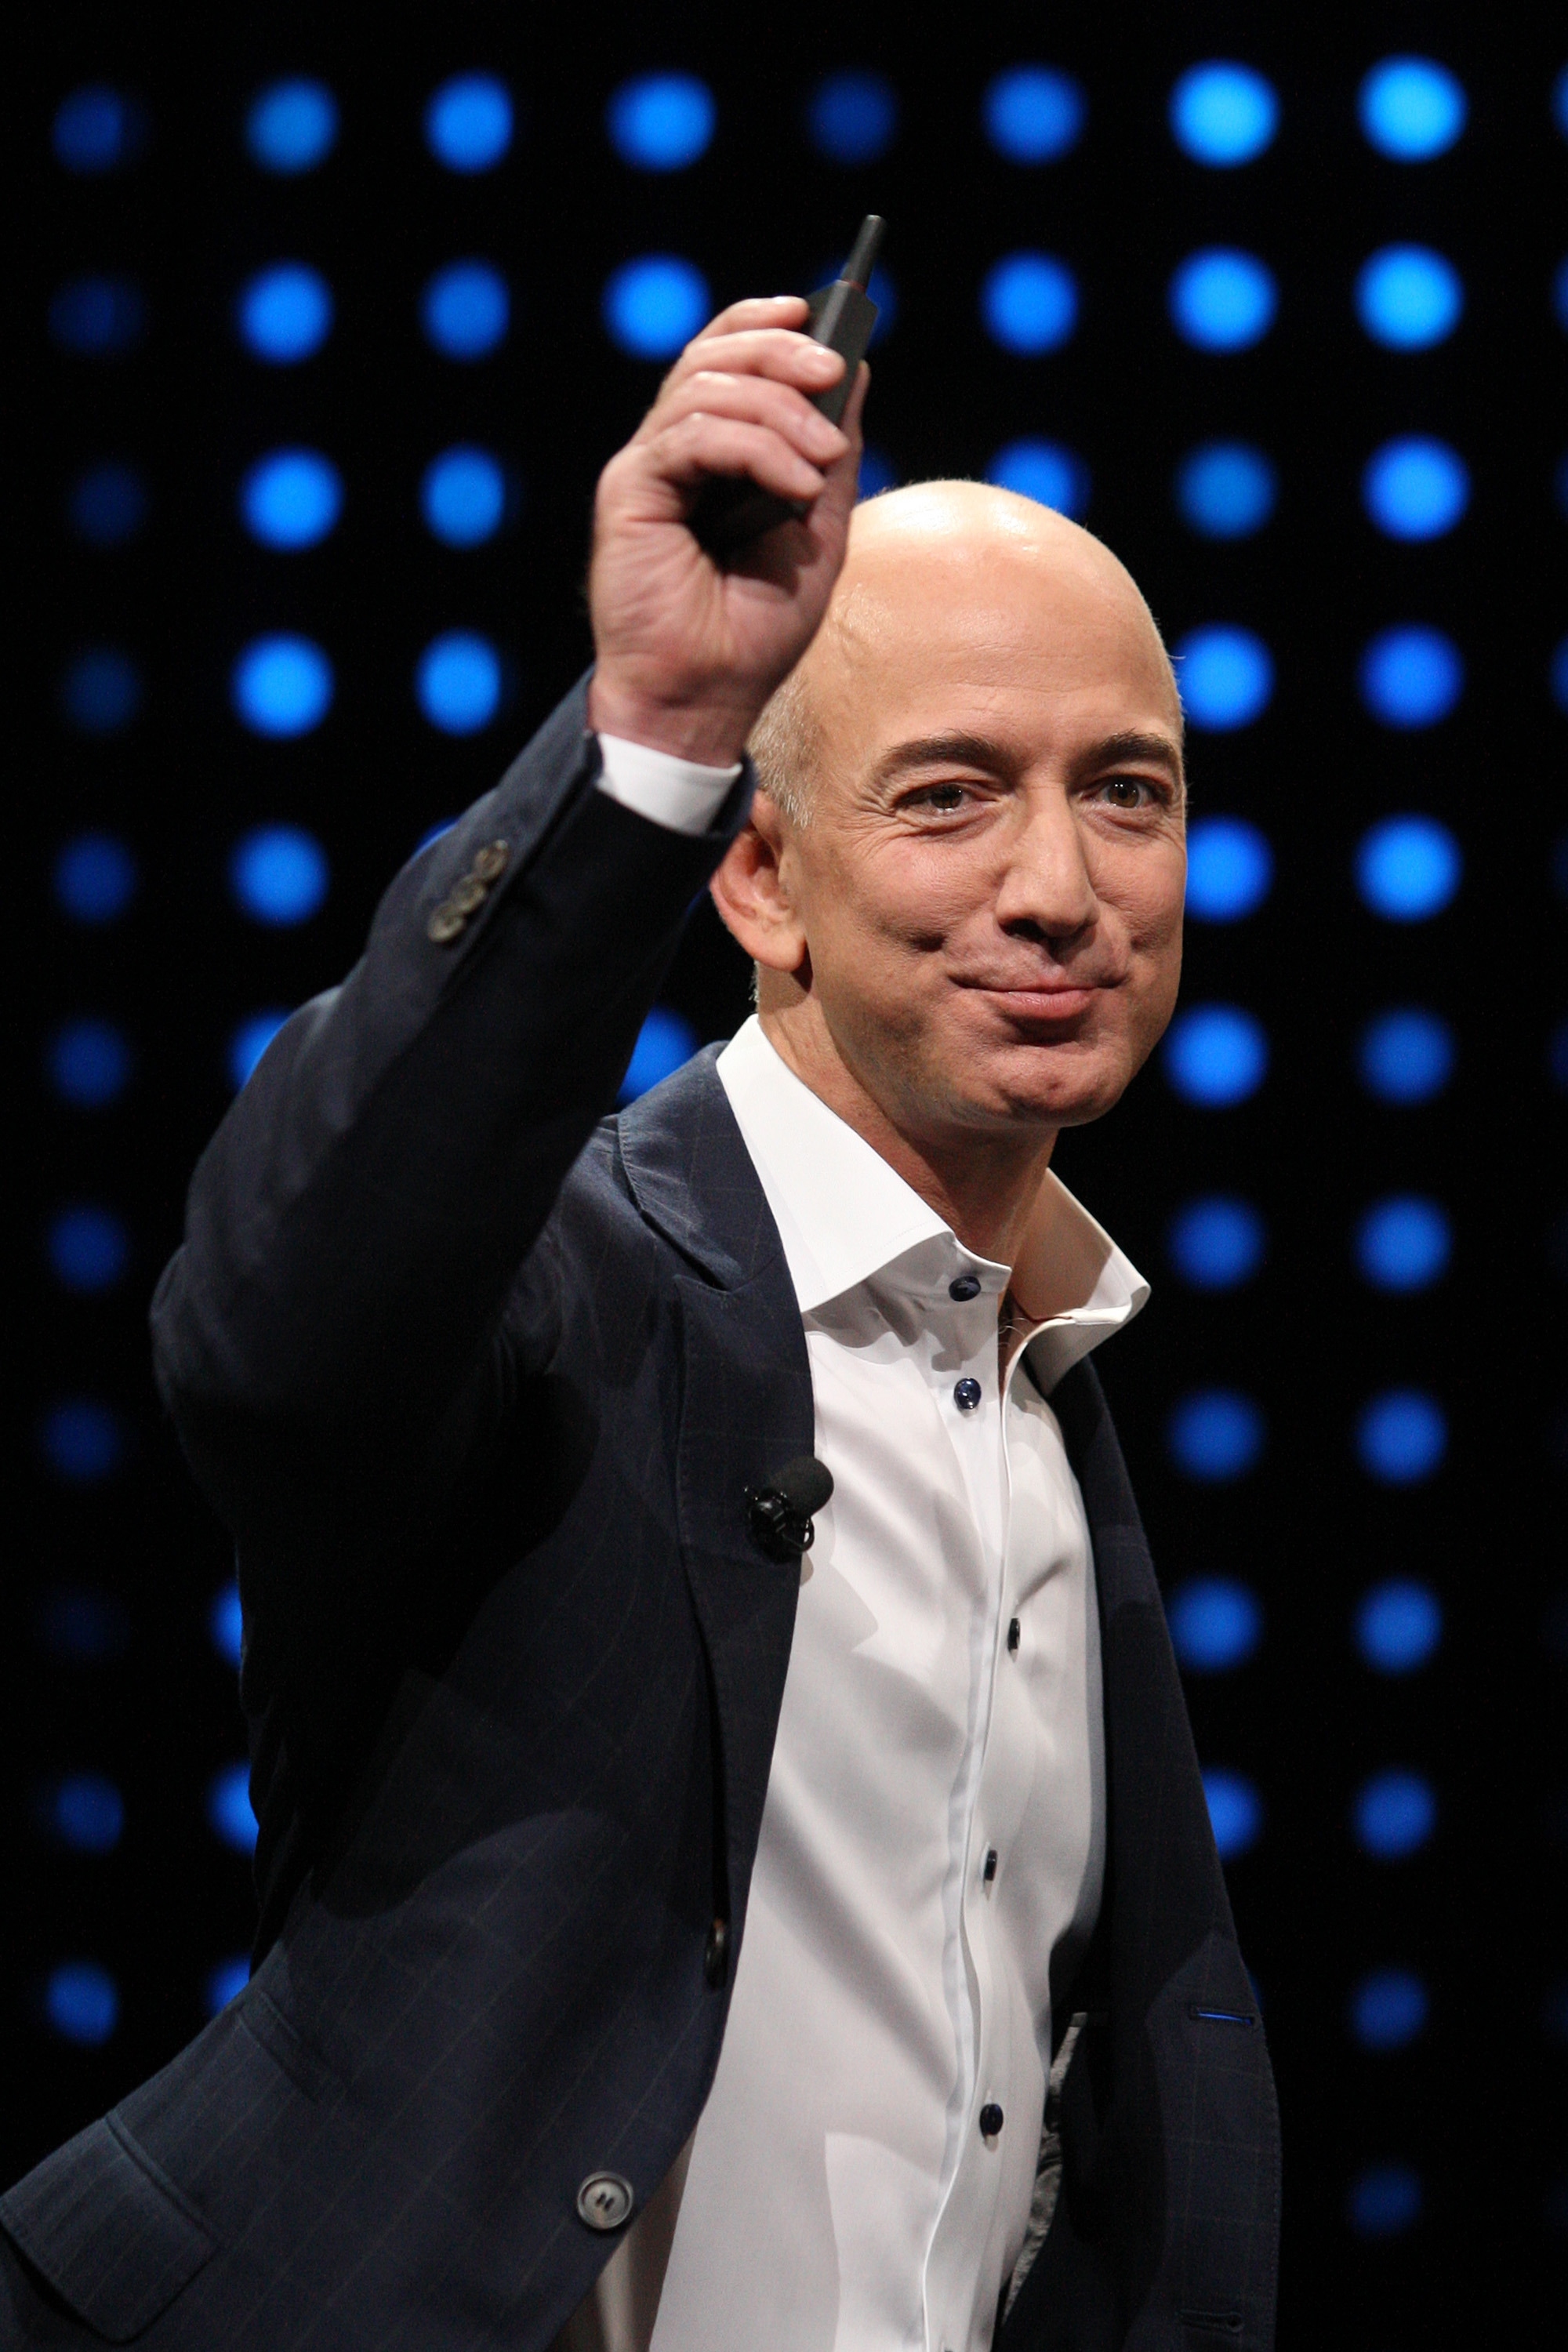 """Brad Stone describes Jeff Bezos' laugh as """"a guttural roar that sounds like a cross between a mating elephant seal and a power tool."""""""